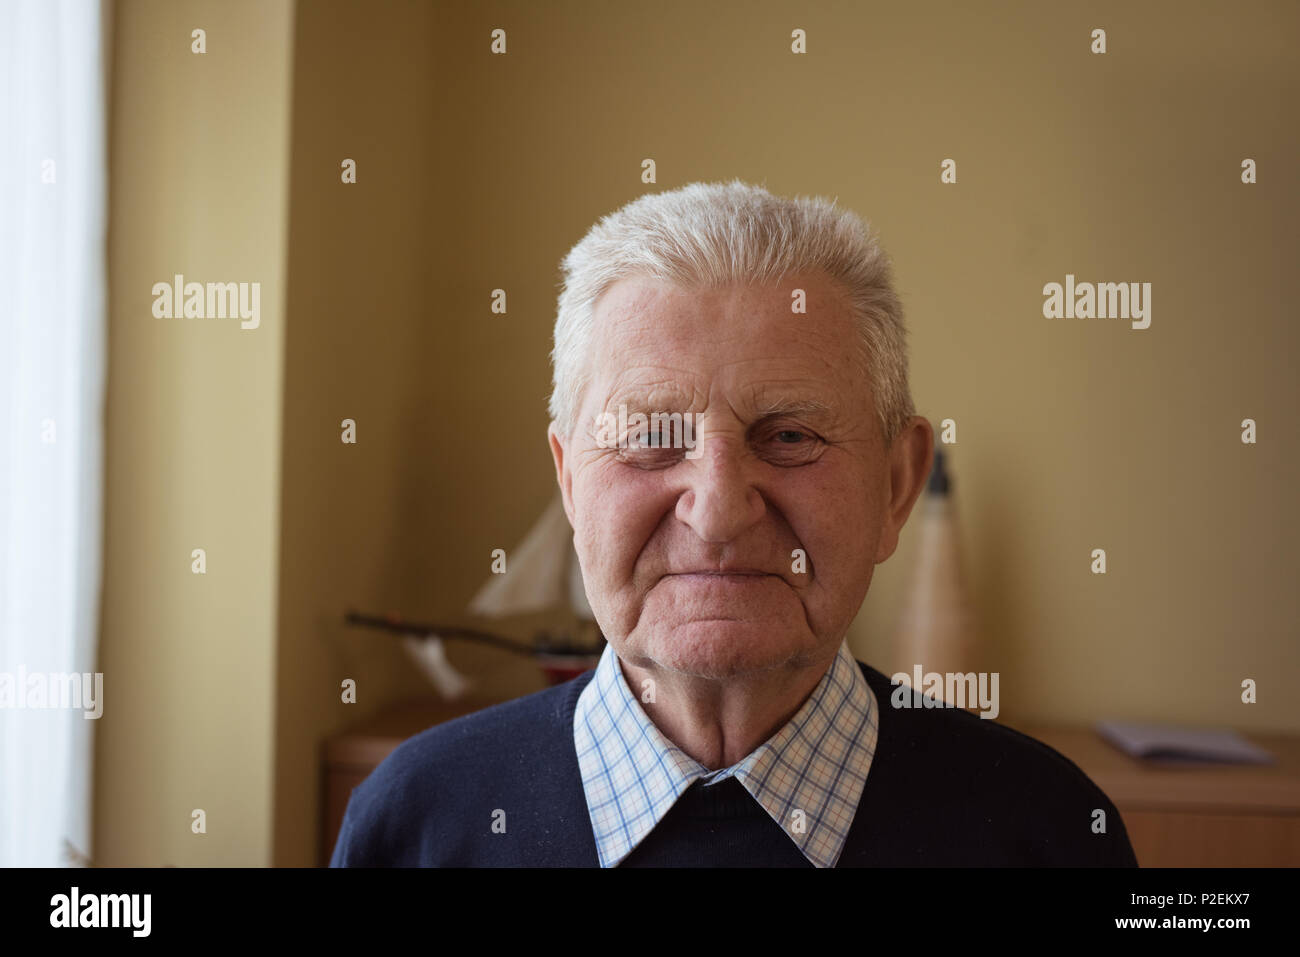 Senior man looking at camera - Stock Image